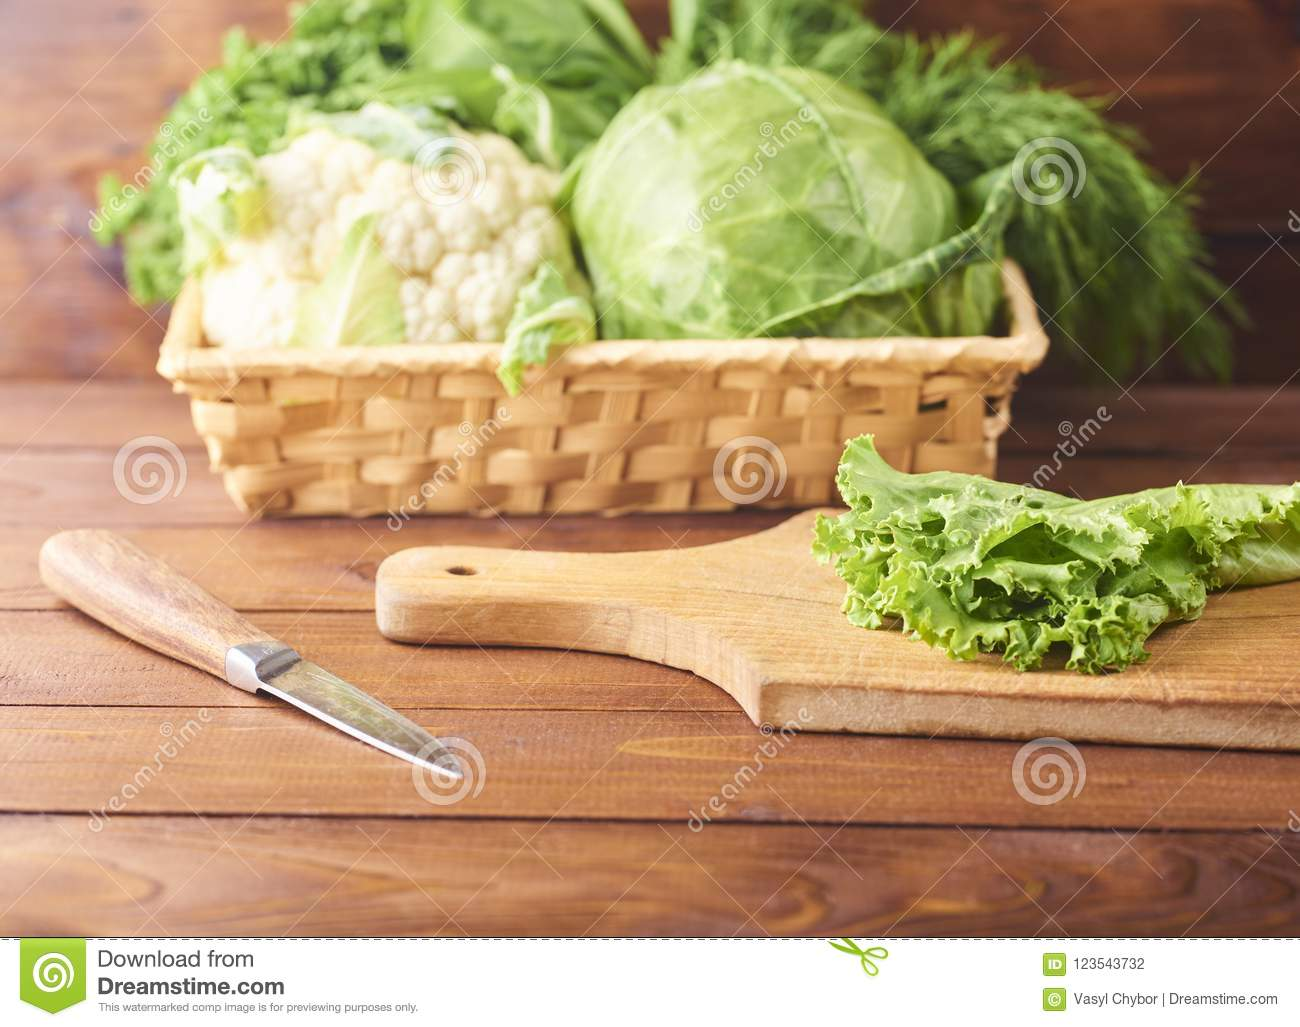 Lettuce leaves on cutting board with knife on wooden background.